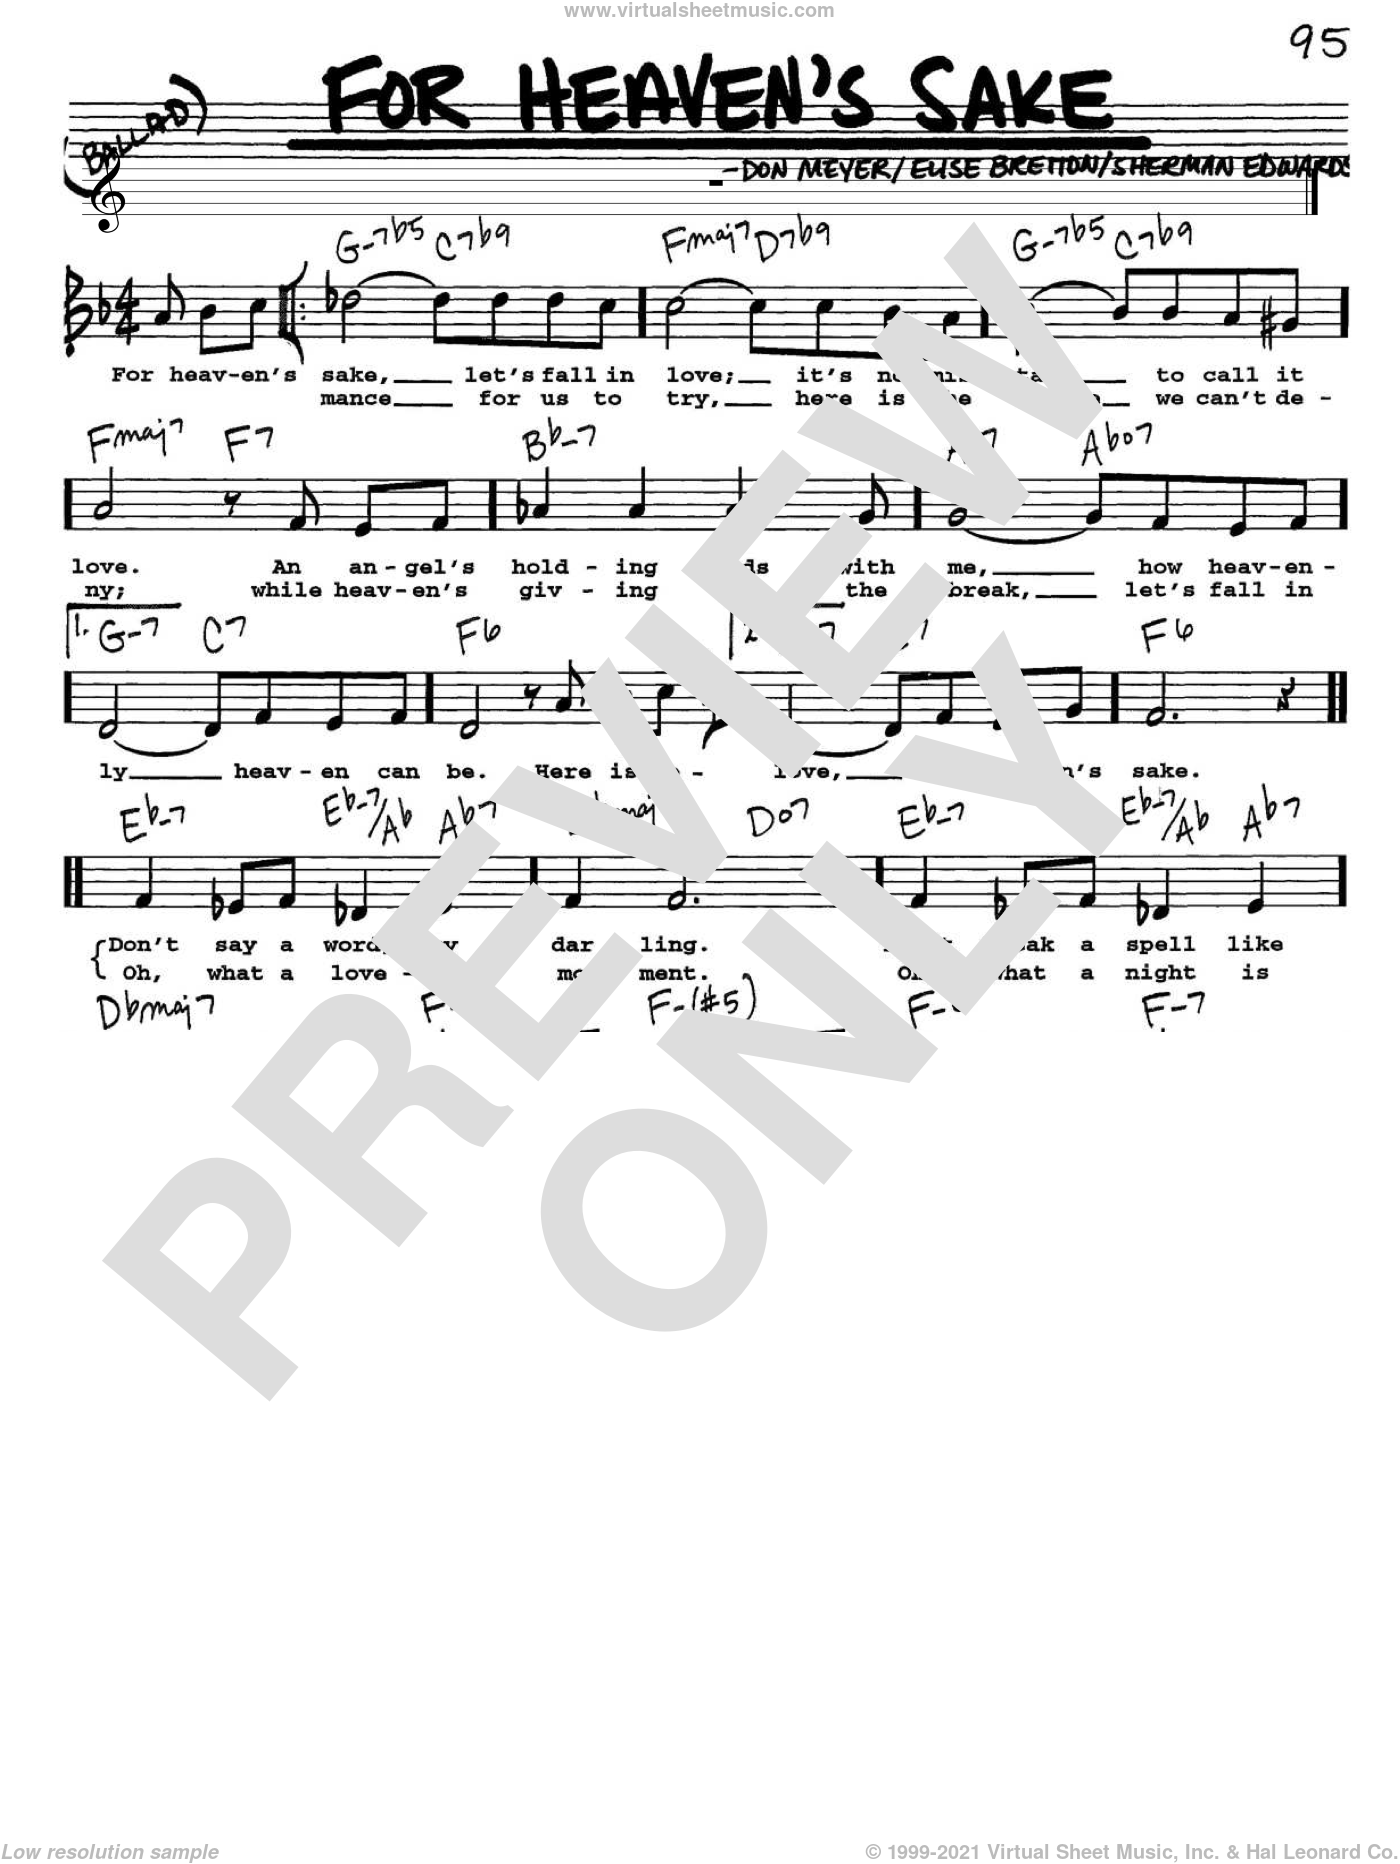 For Heaven's Sake sheet music for voice and other instruments  by Bill Evans, Don Meyer, Elise Bretton and Sherman Edwards, intermediate skill level